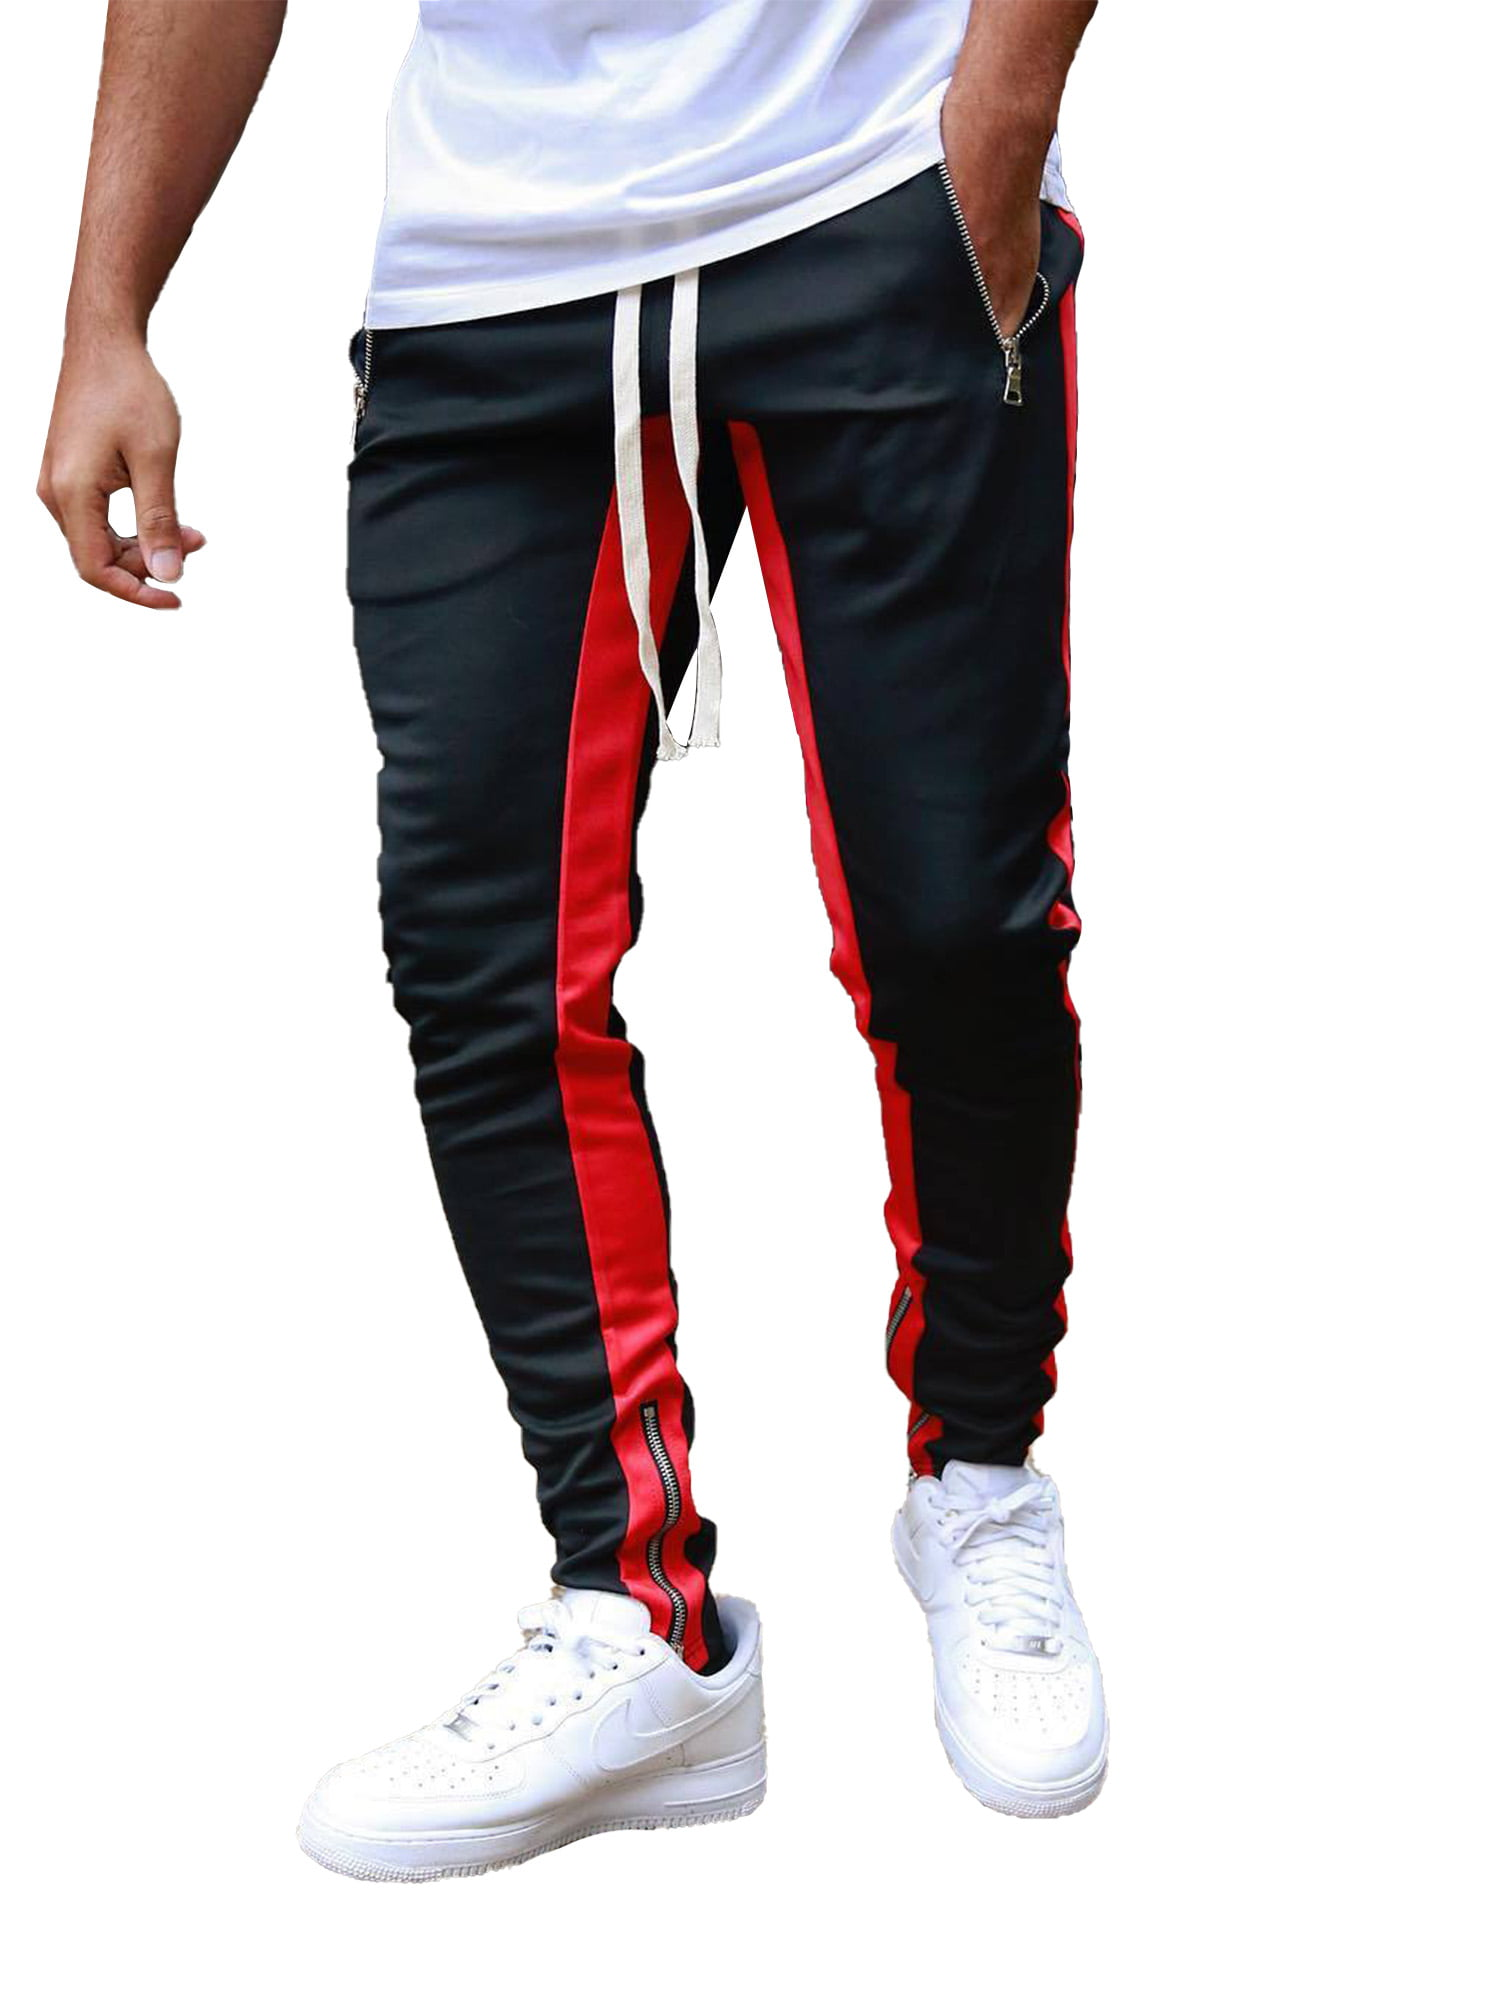 Mens Gym Joggers Sweatpants Workout Slim Fit Running Trousers Pants Bottoms New